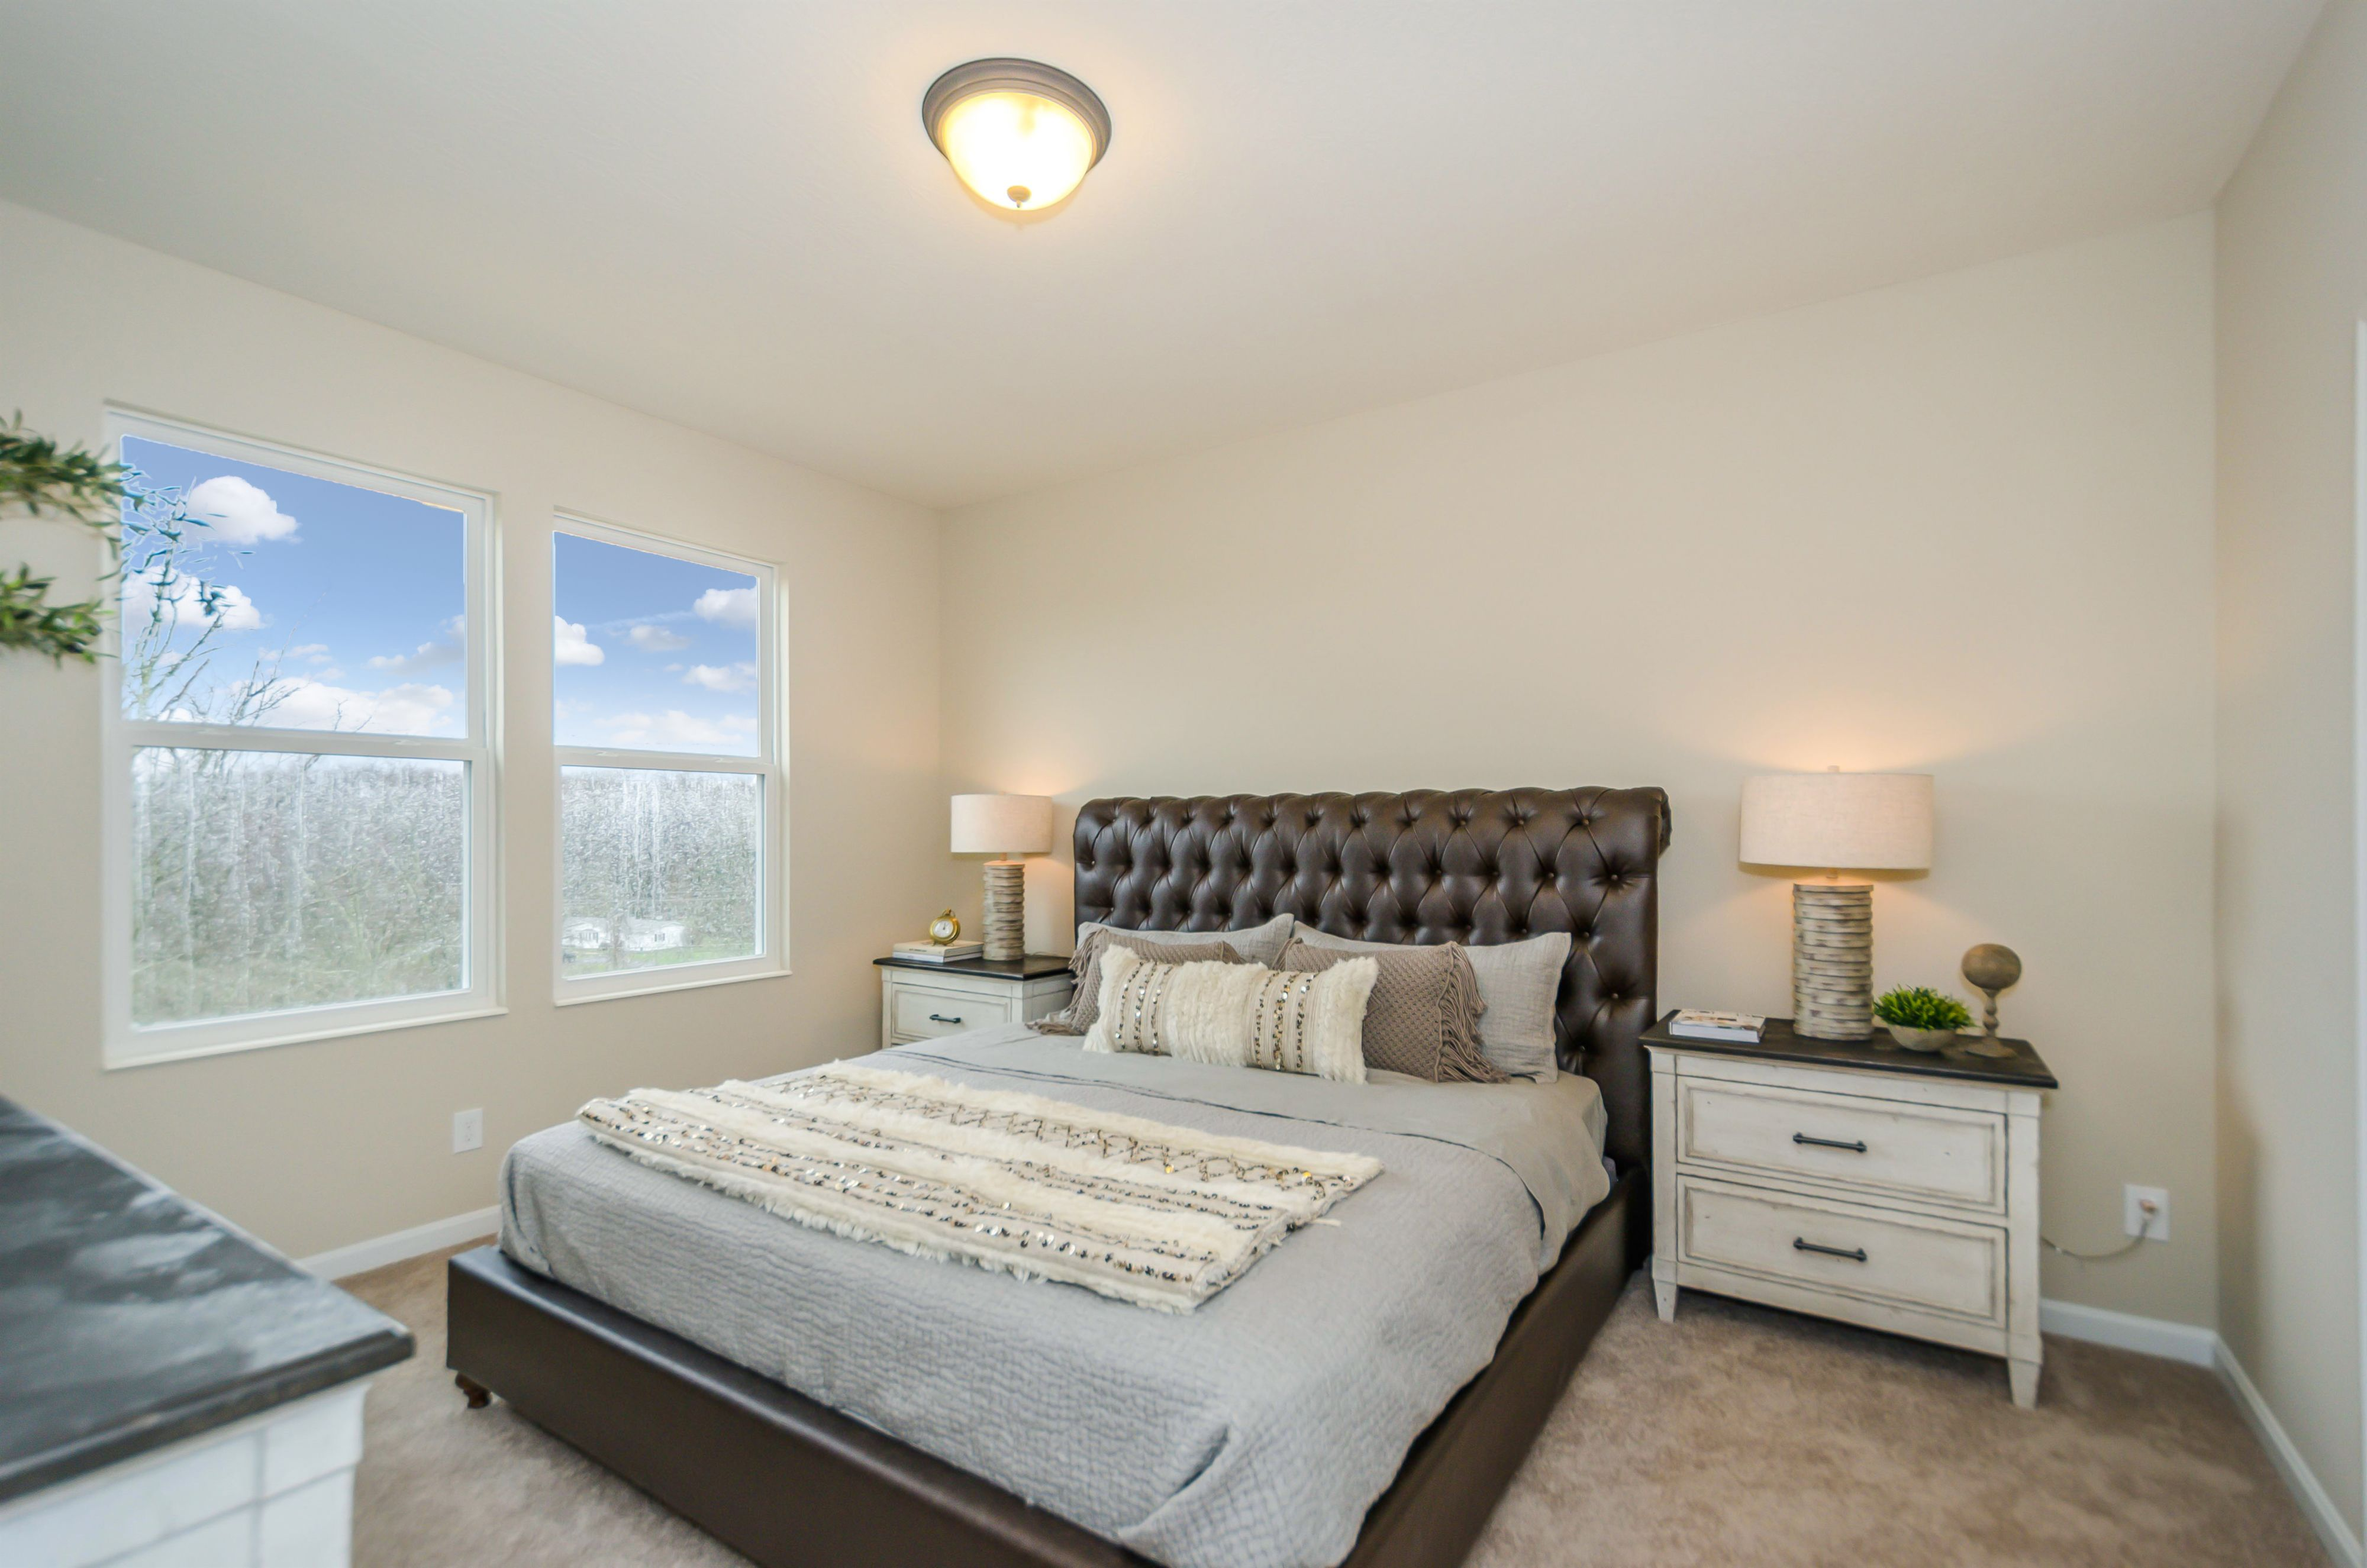 Bedroom featured in the Wembley By Fischer Homes  in Cincinnati, OH